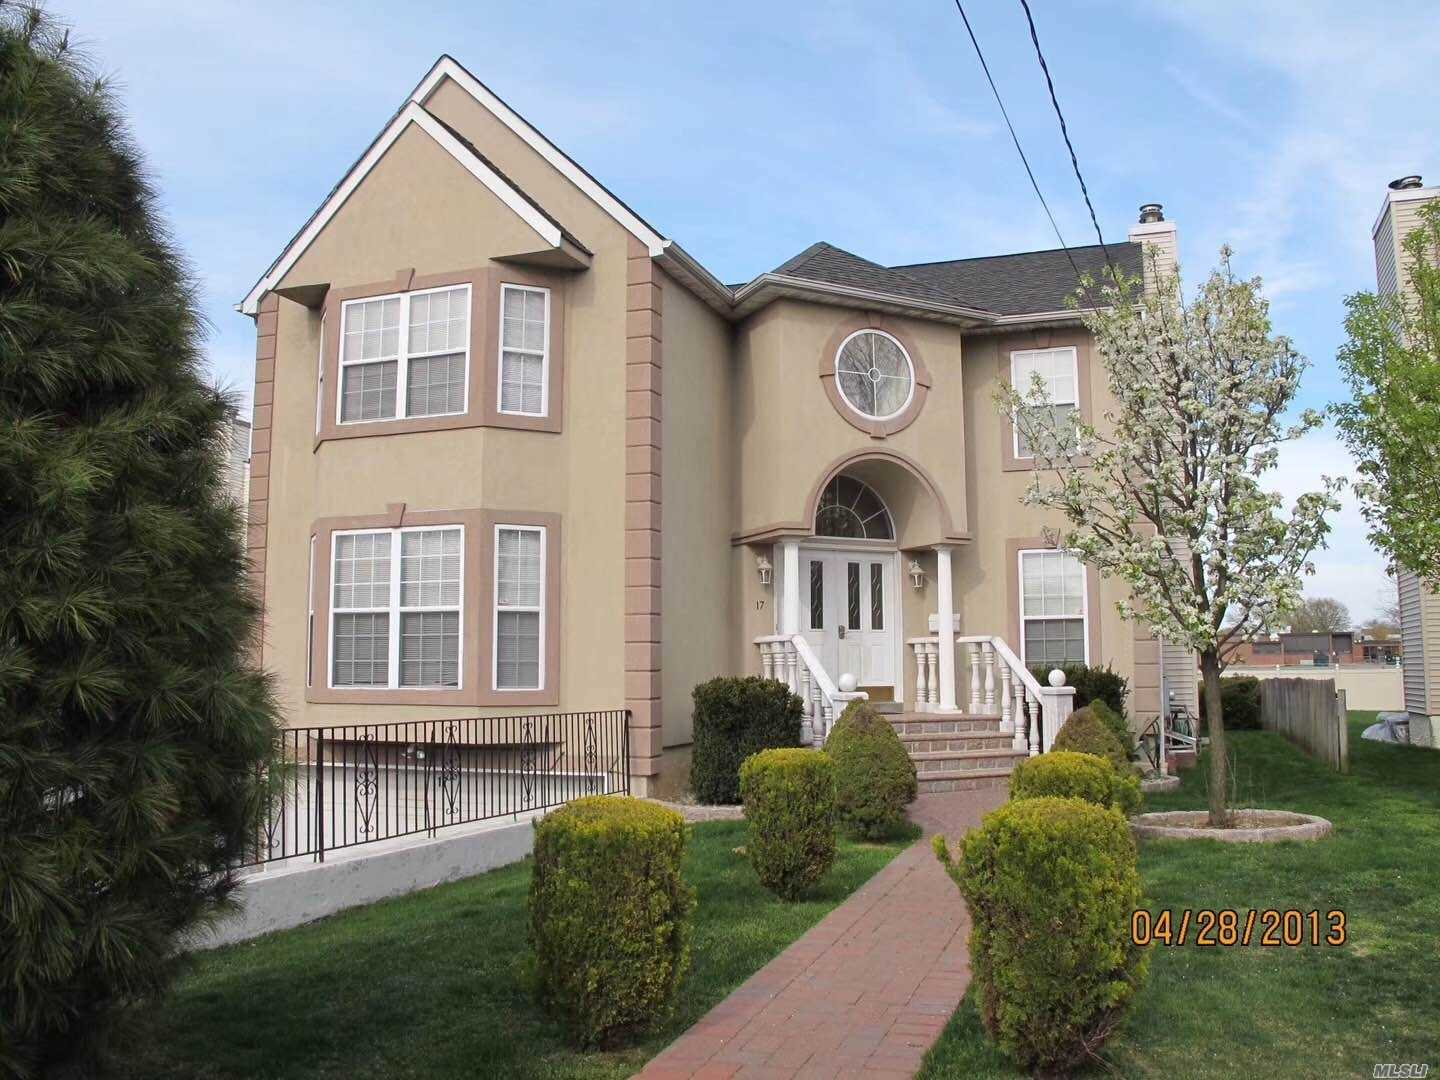 House for sale Williston Park, NY 17 Herricks Road